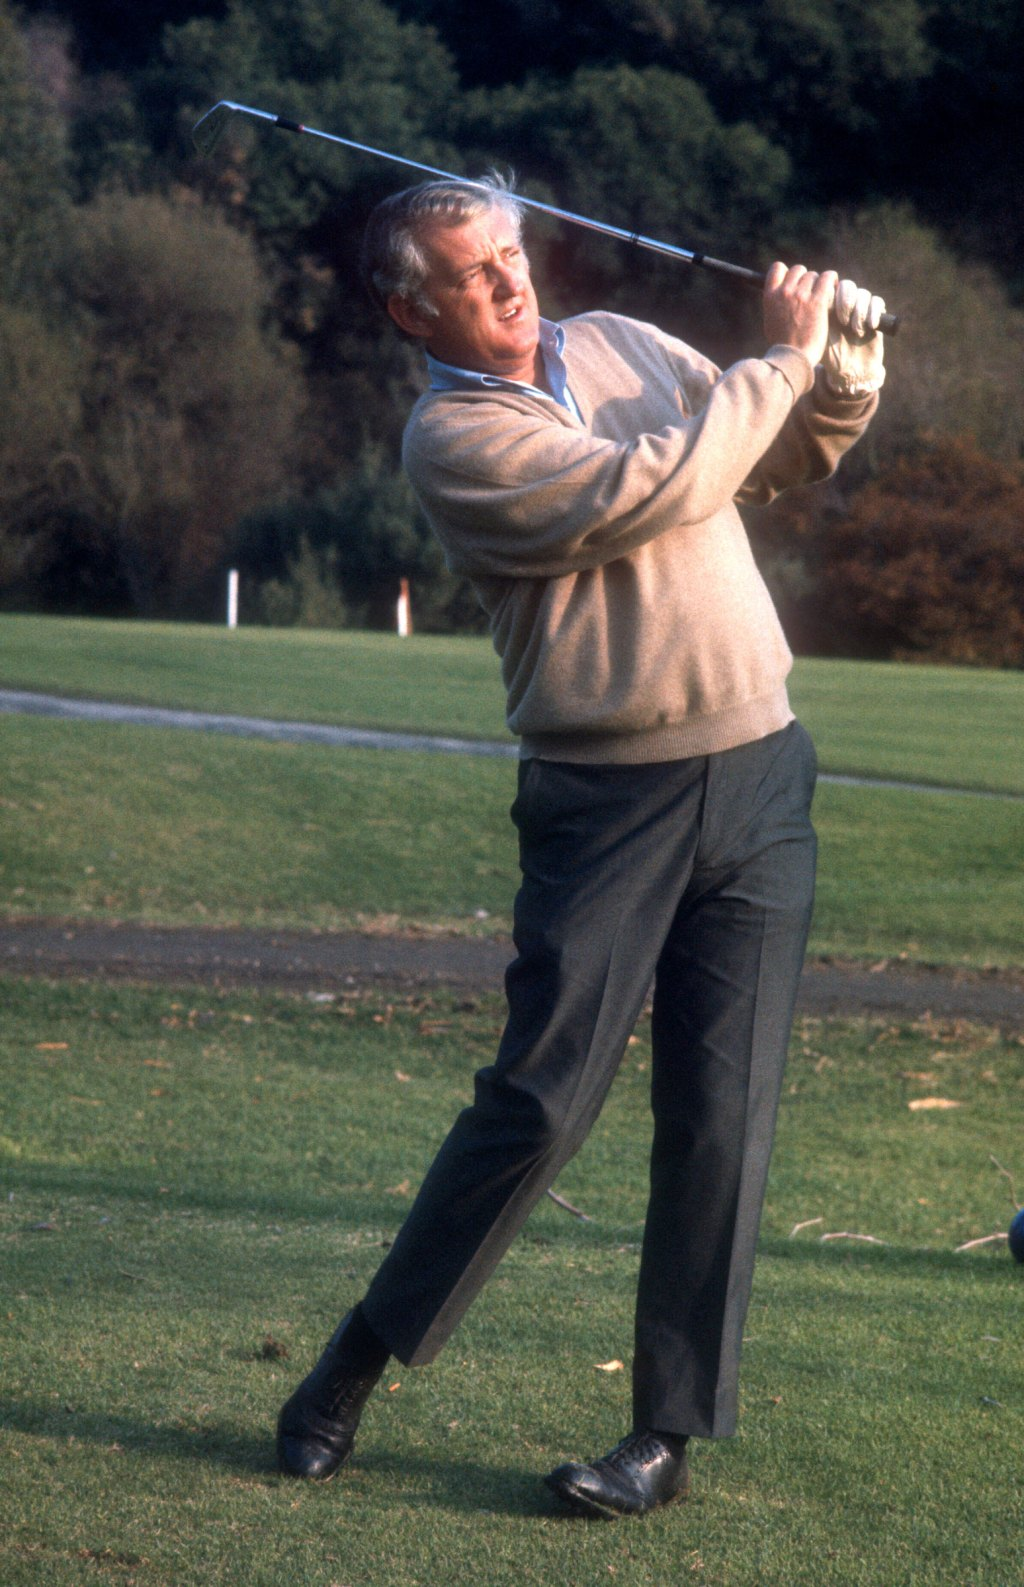 Sports Illustrated writer Dan Jenkins follows his shot during a celebrity golf event circa 1972.